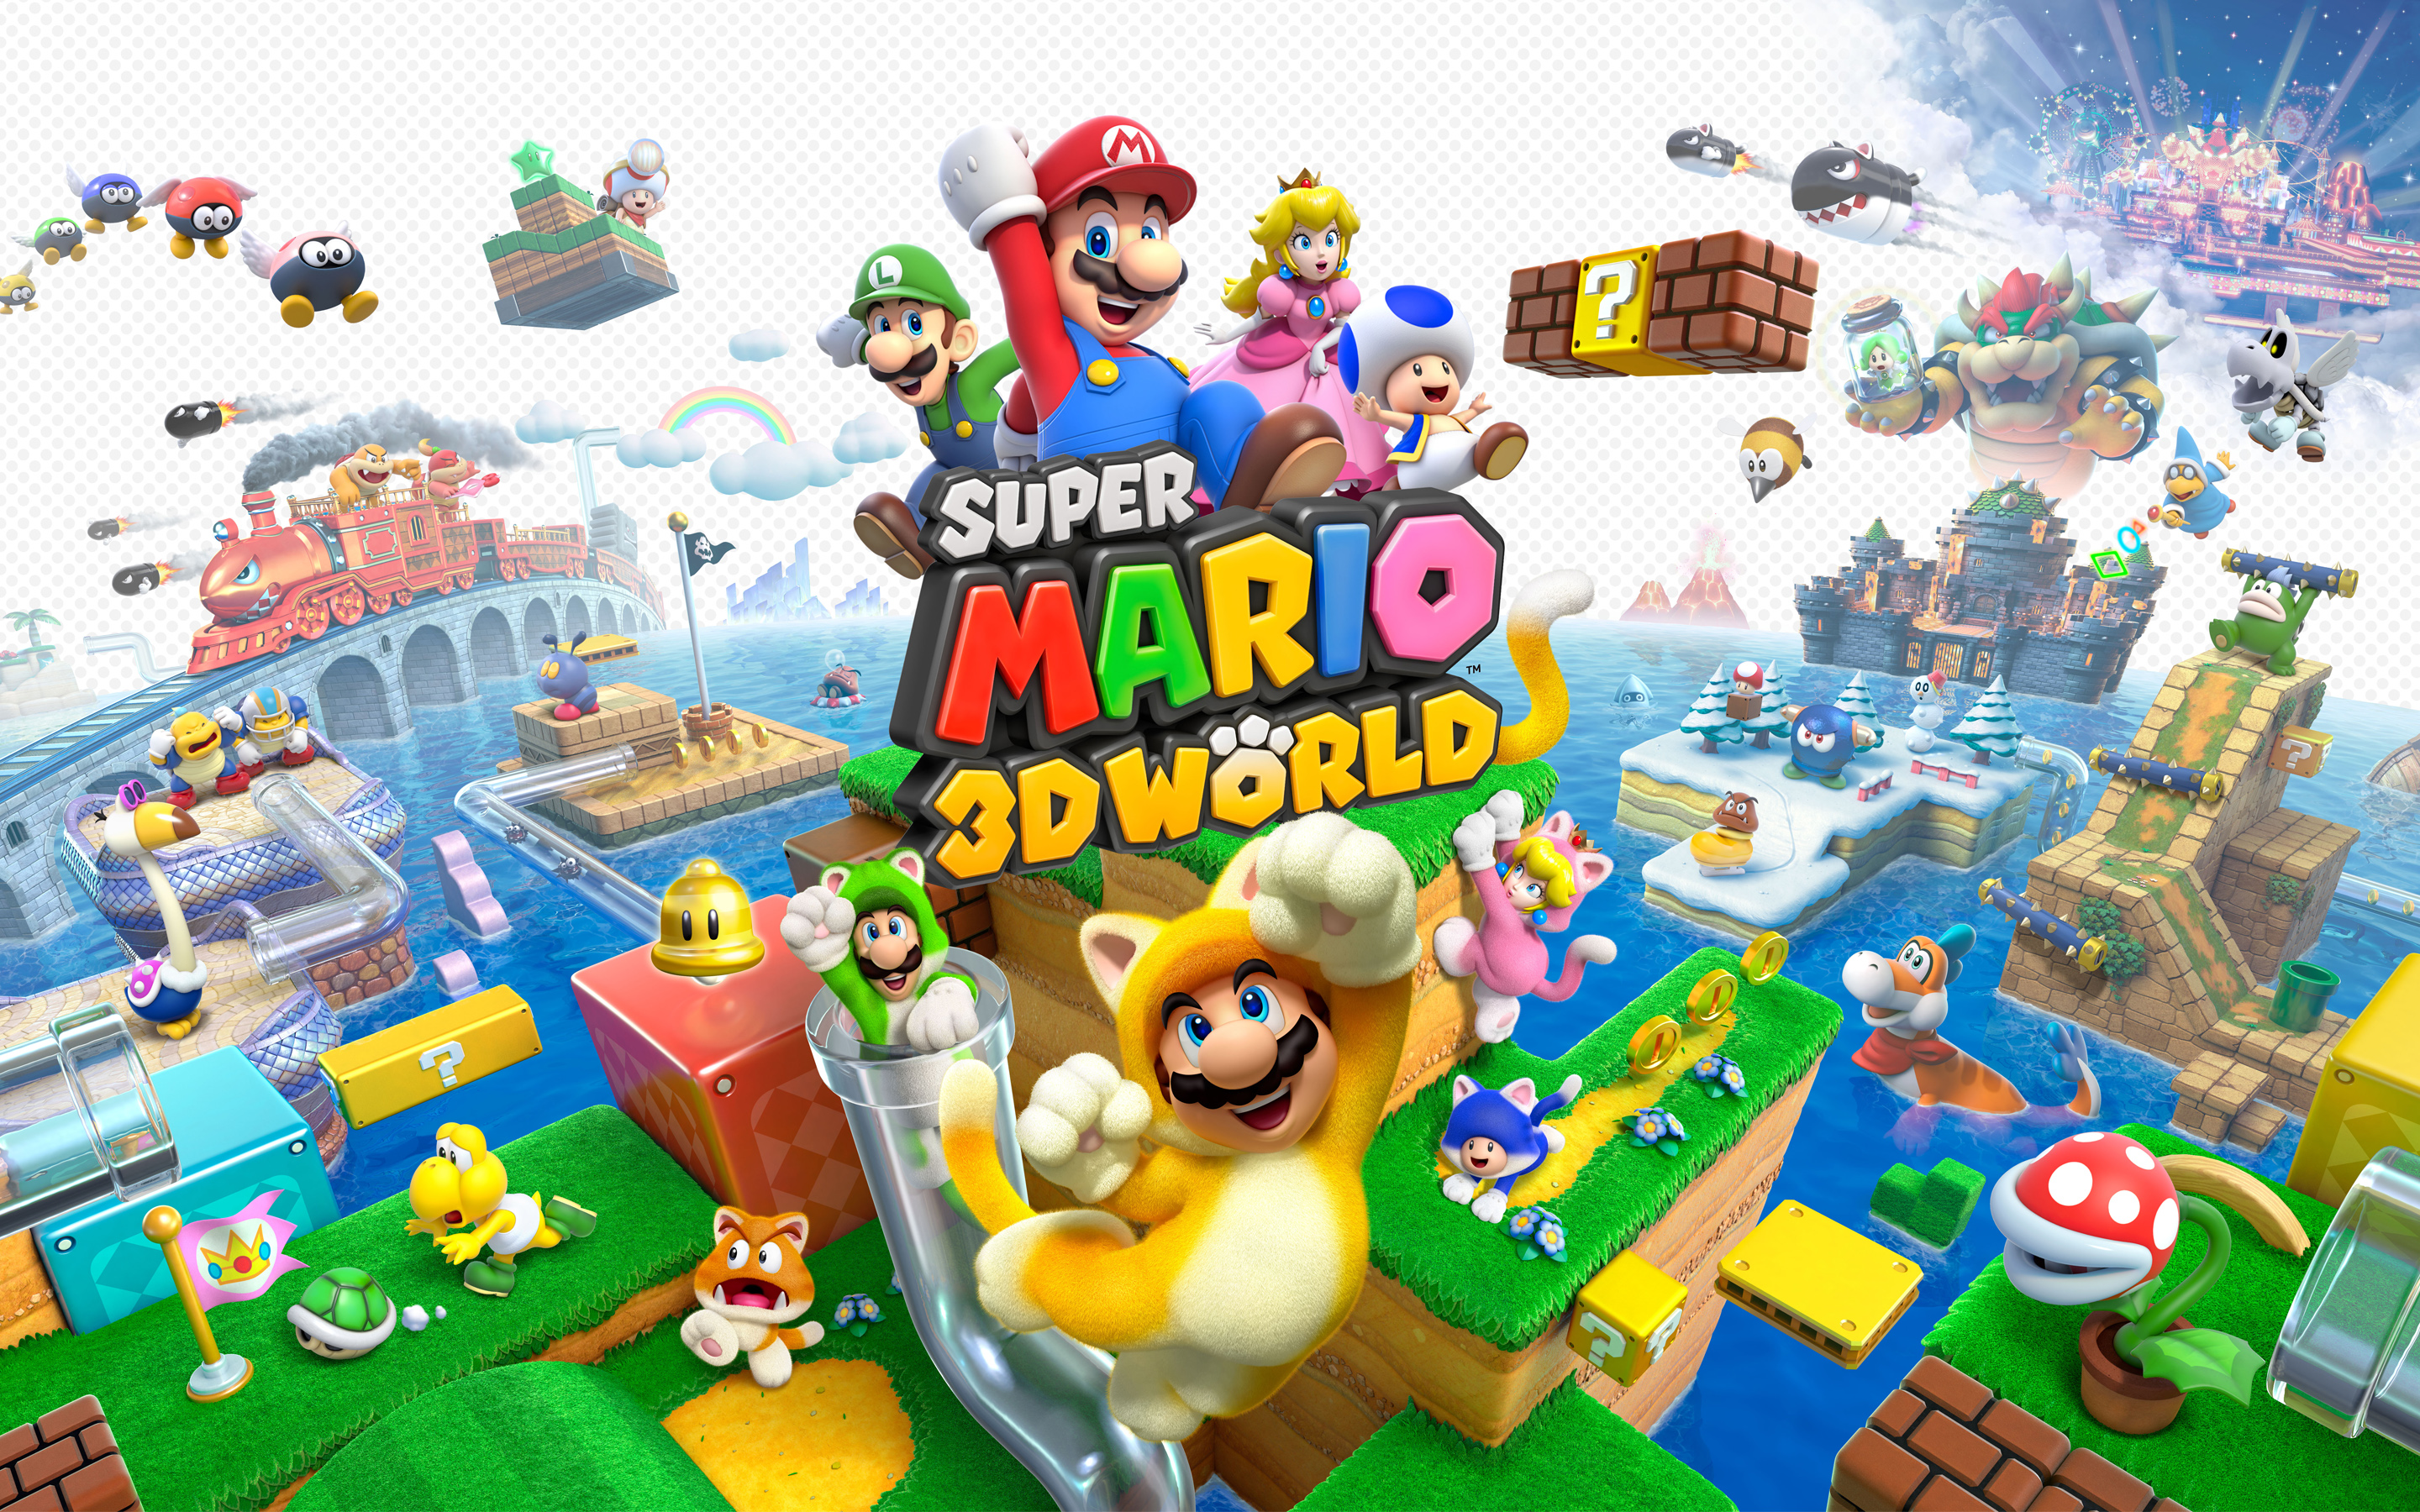 super mario world wallpaper 3d